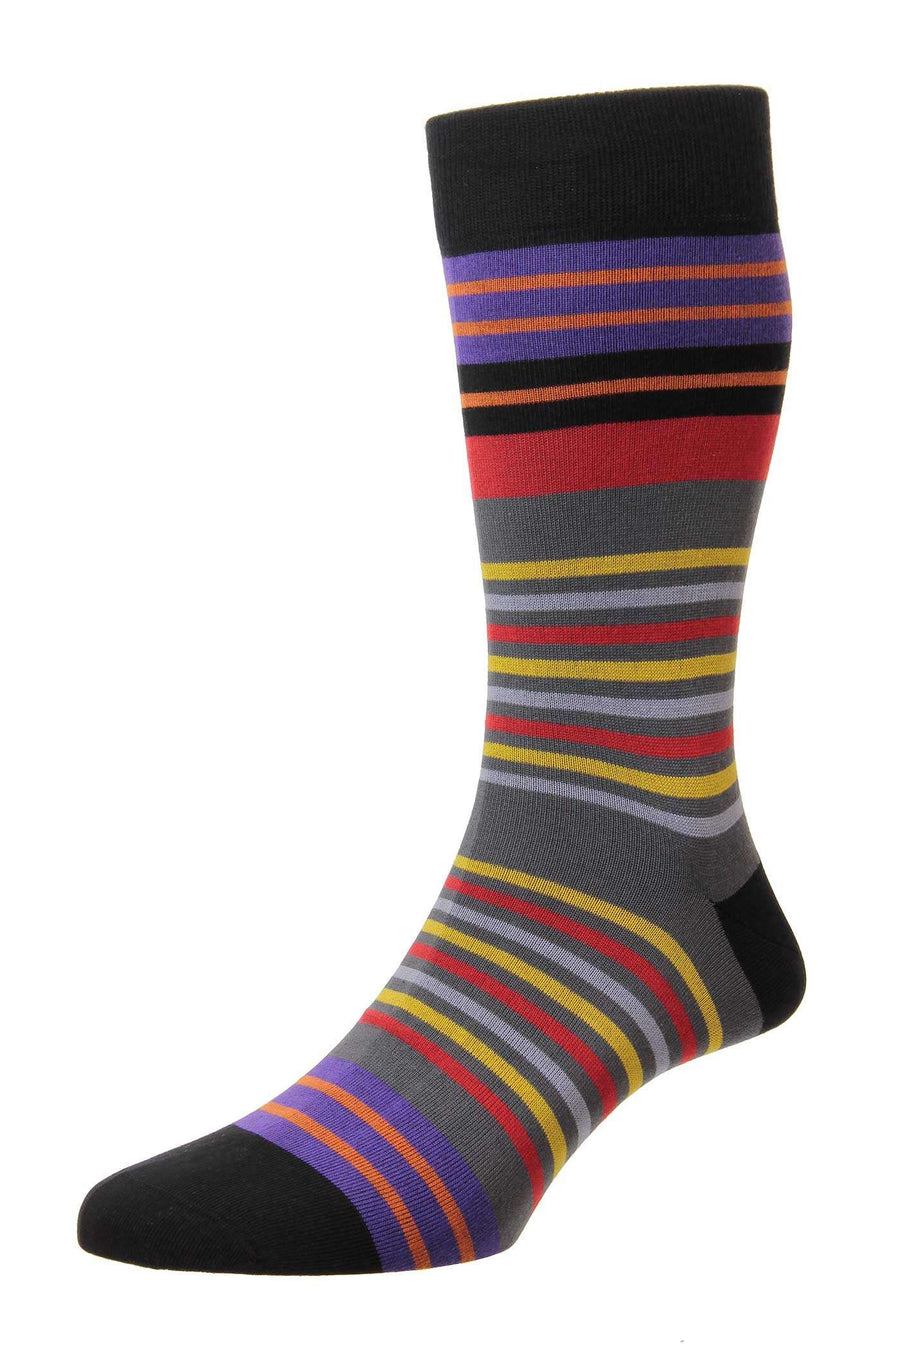 Black Swift Stripe Cotton Mid-Calf